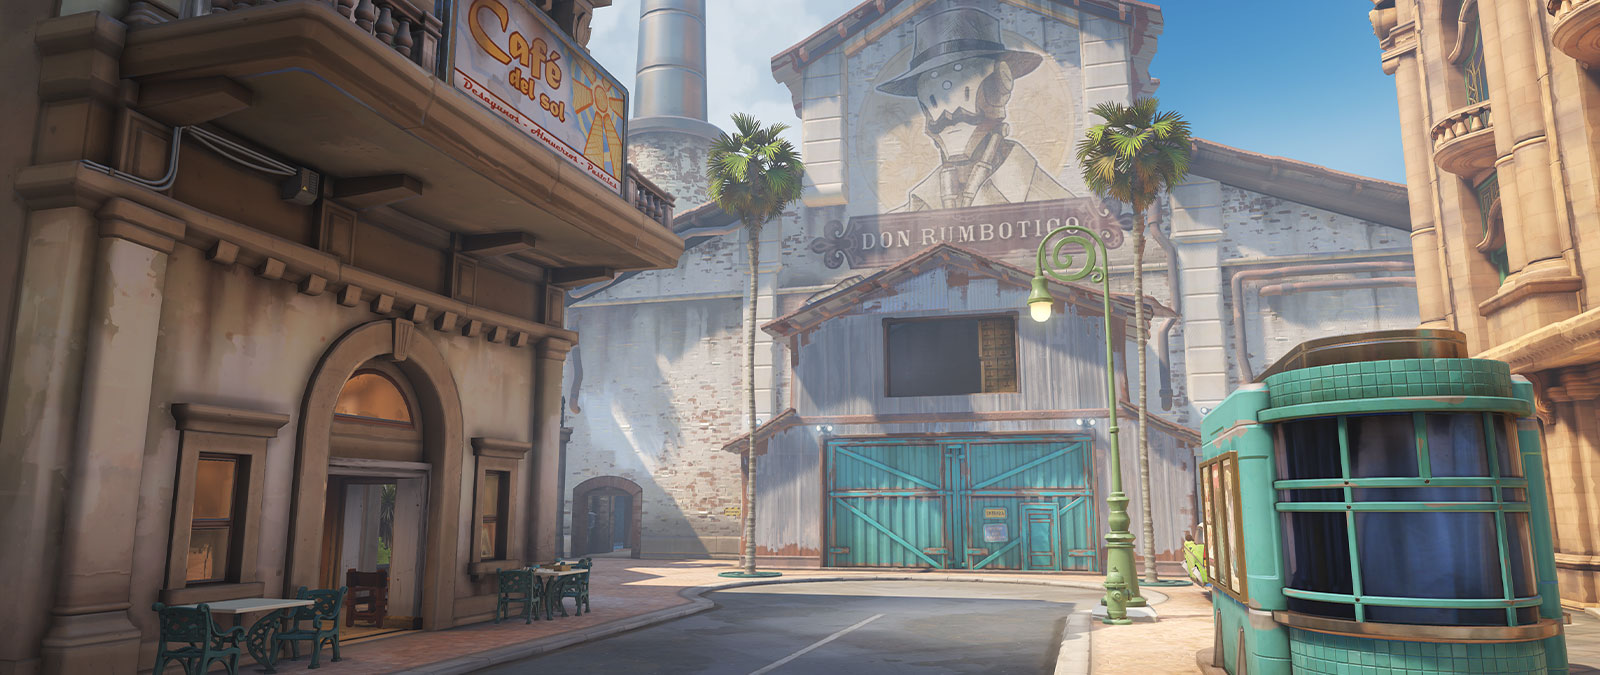 Overwatch Havana Map featuring dusty buildings and a barn with a picture of a robot in a top hat painted on it.